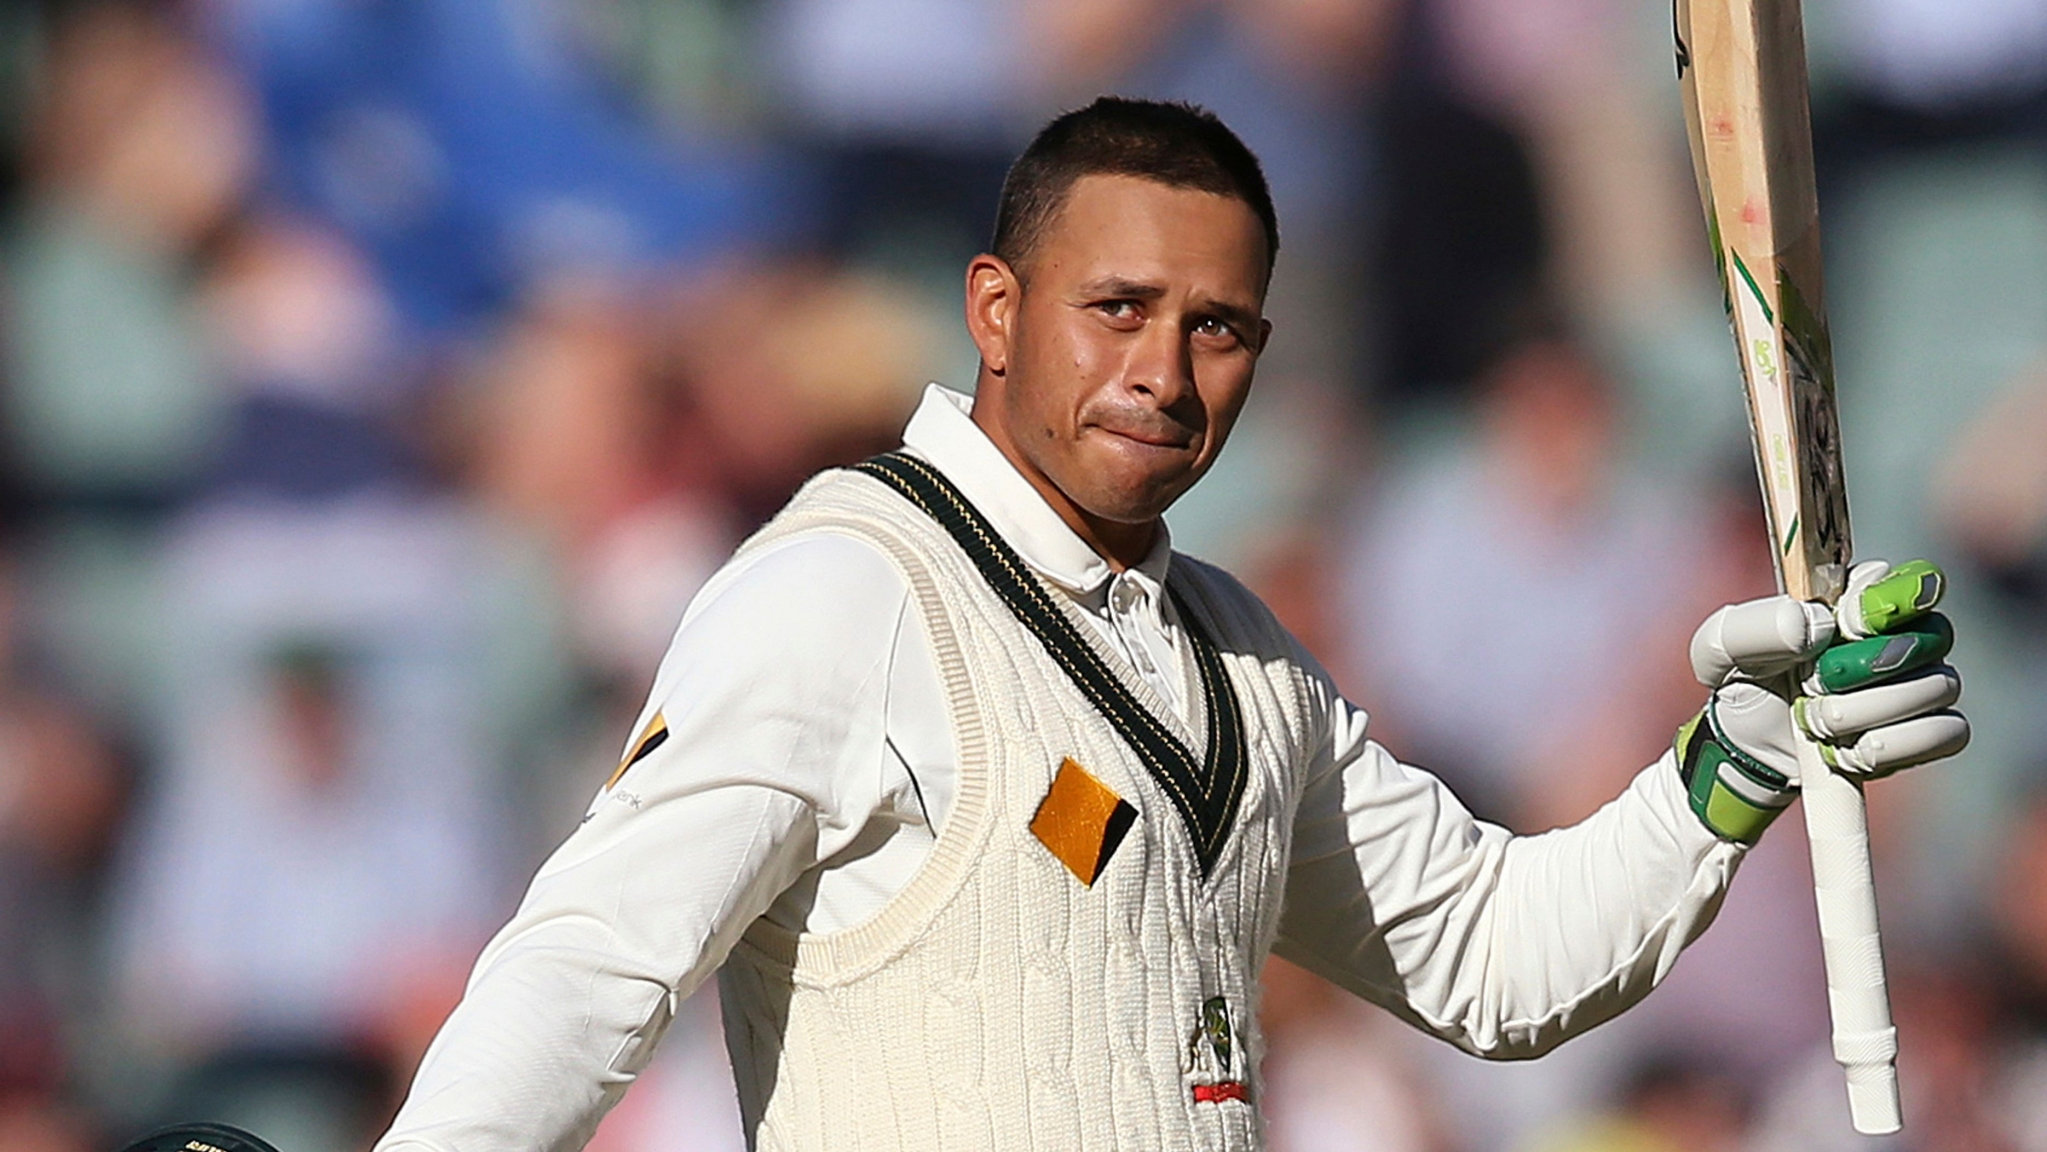 Brother of Australia Test Cricketer Usman Khawaja Arrested